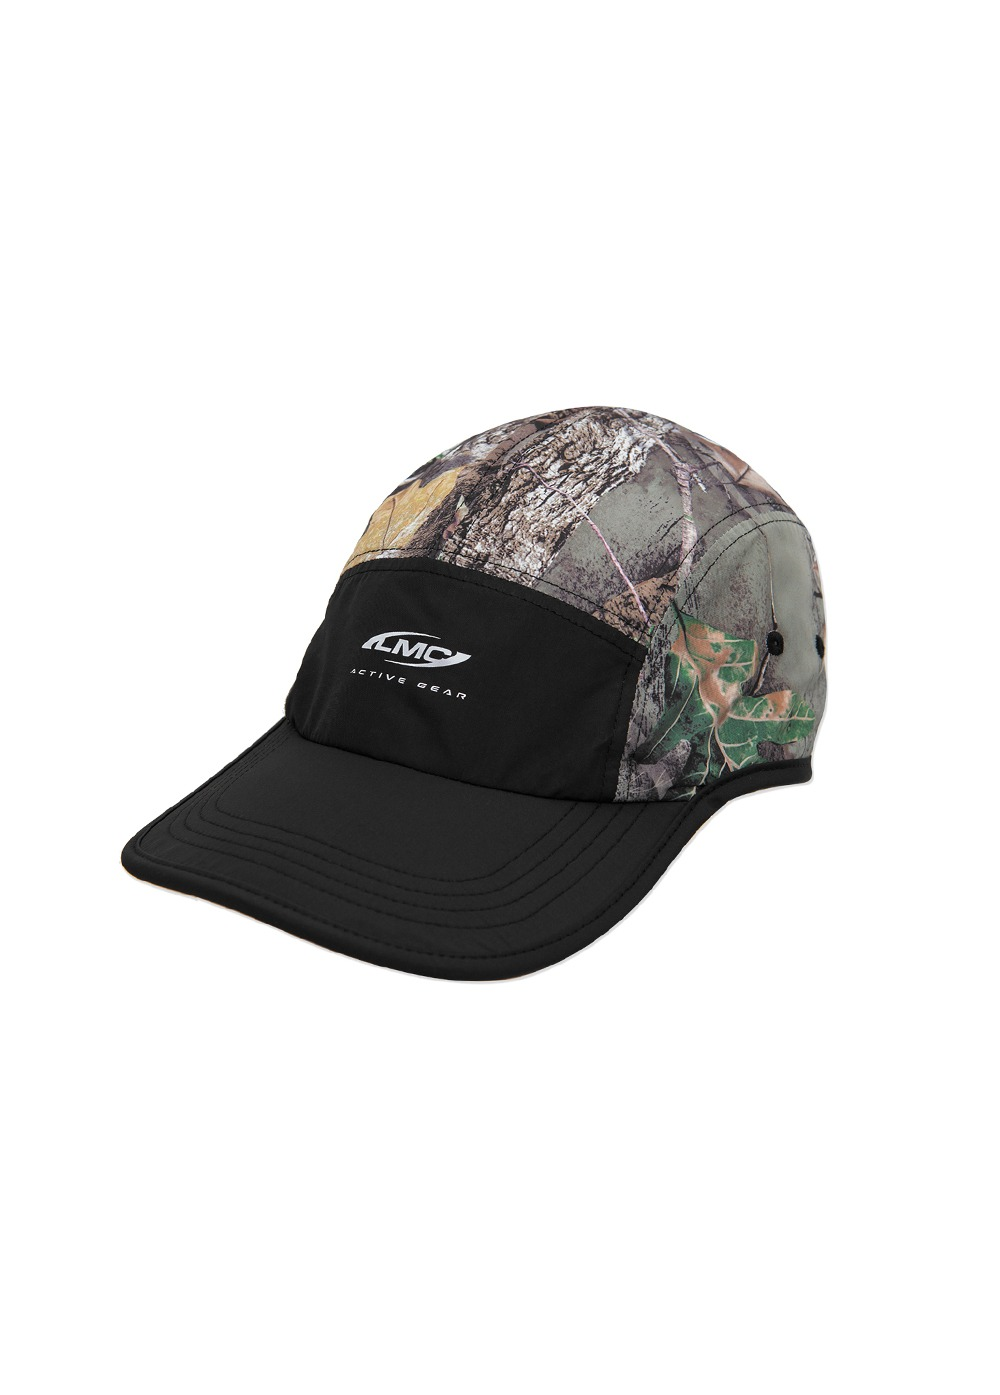 LMC ACTIVE GEAR RUNNING CAP camo